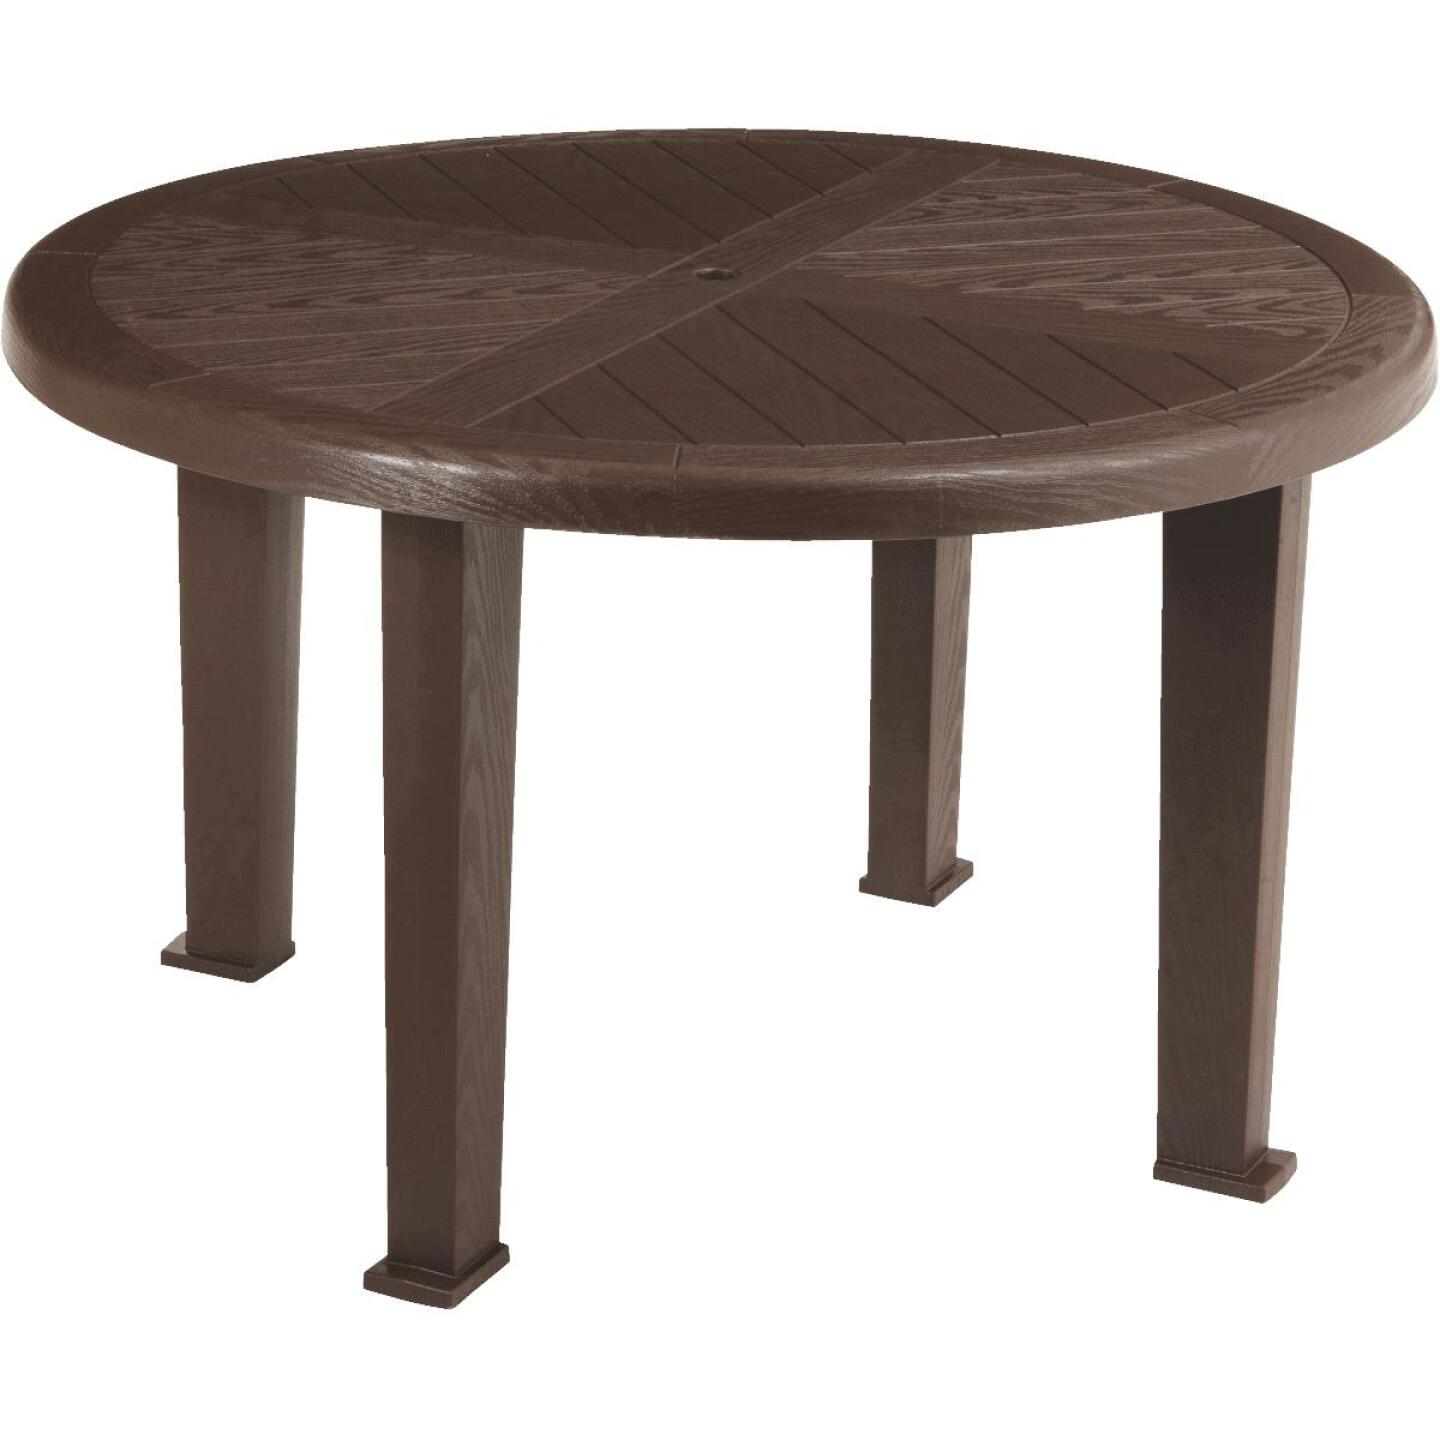 Brentwood 48 In. Round Brown Resin Table Image 1